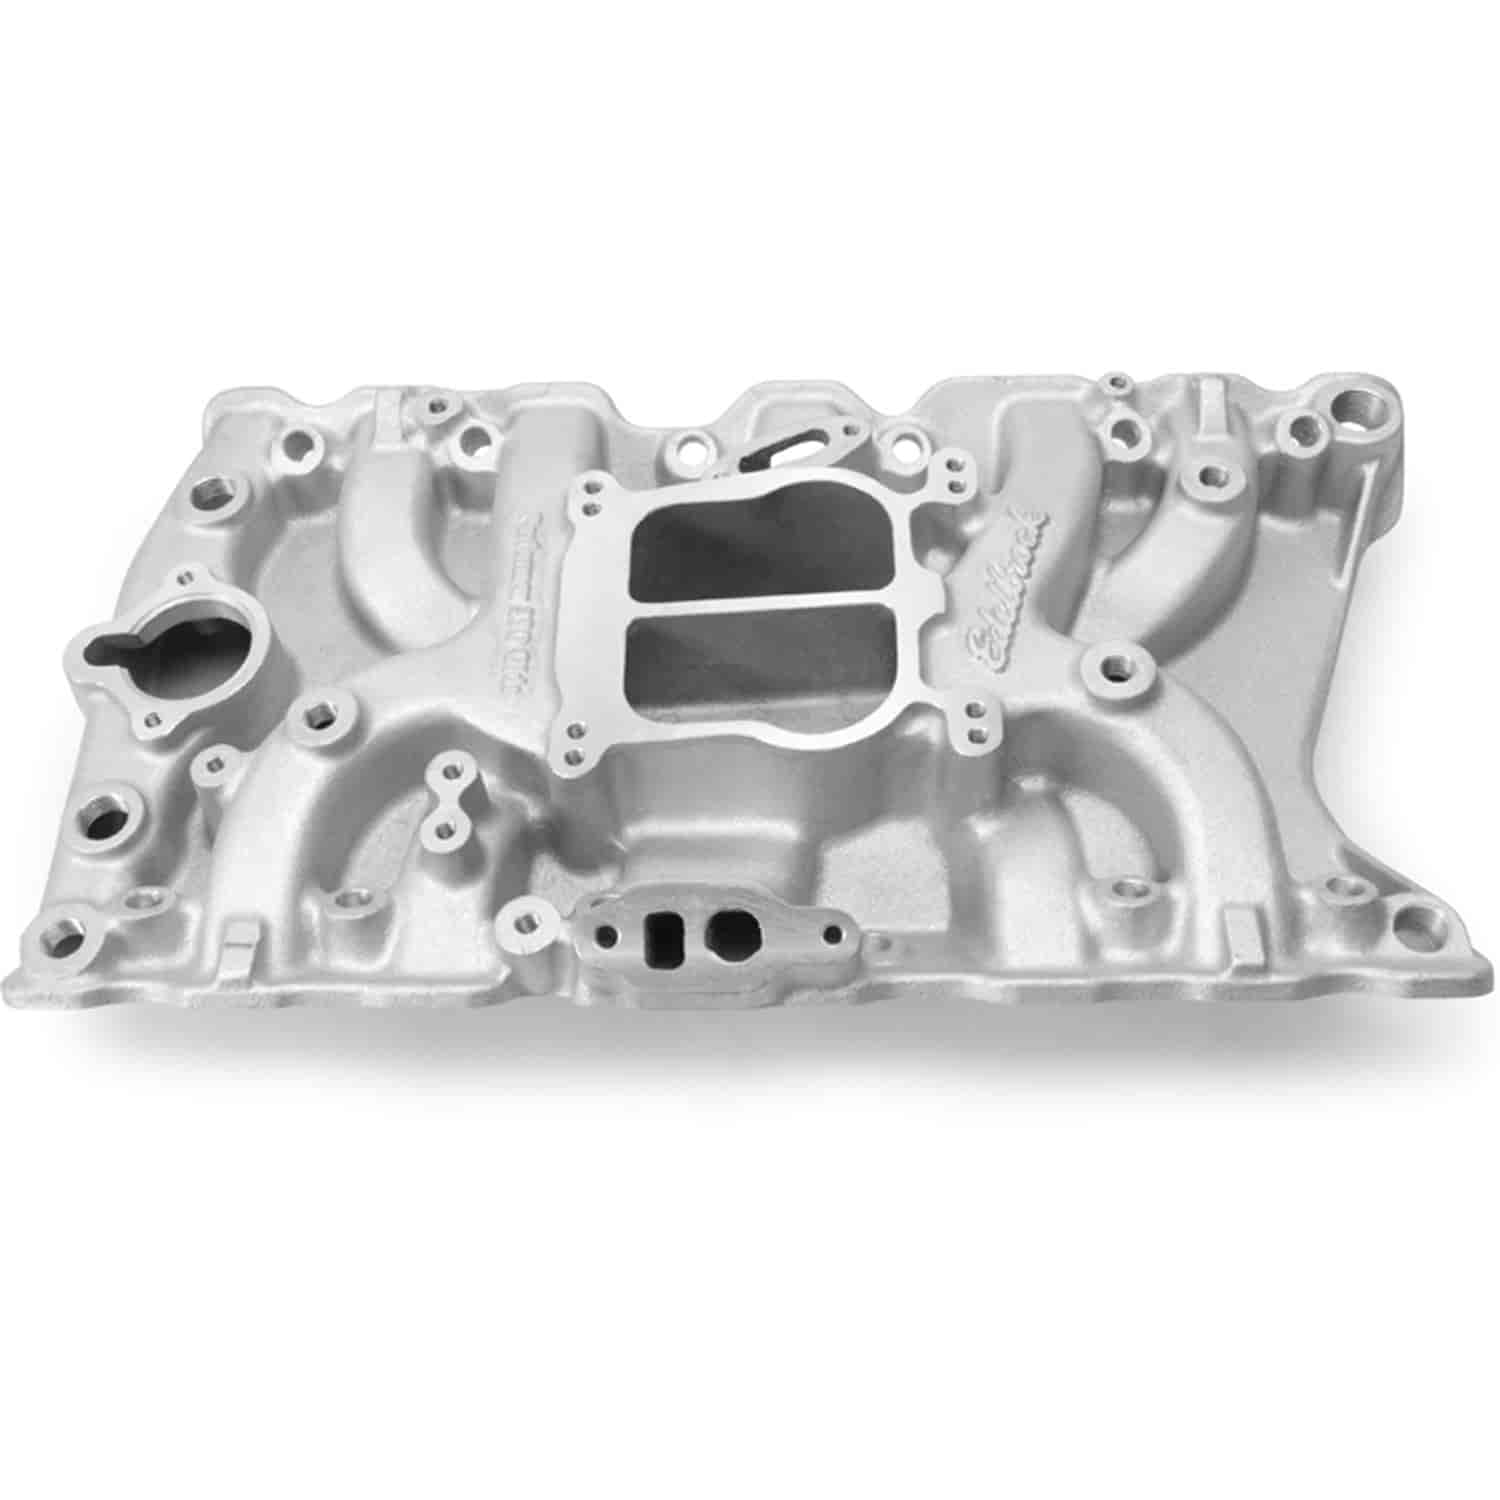 Edelbrock 3711 - Edelbrock Performer Manifolds for Olds